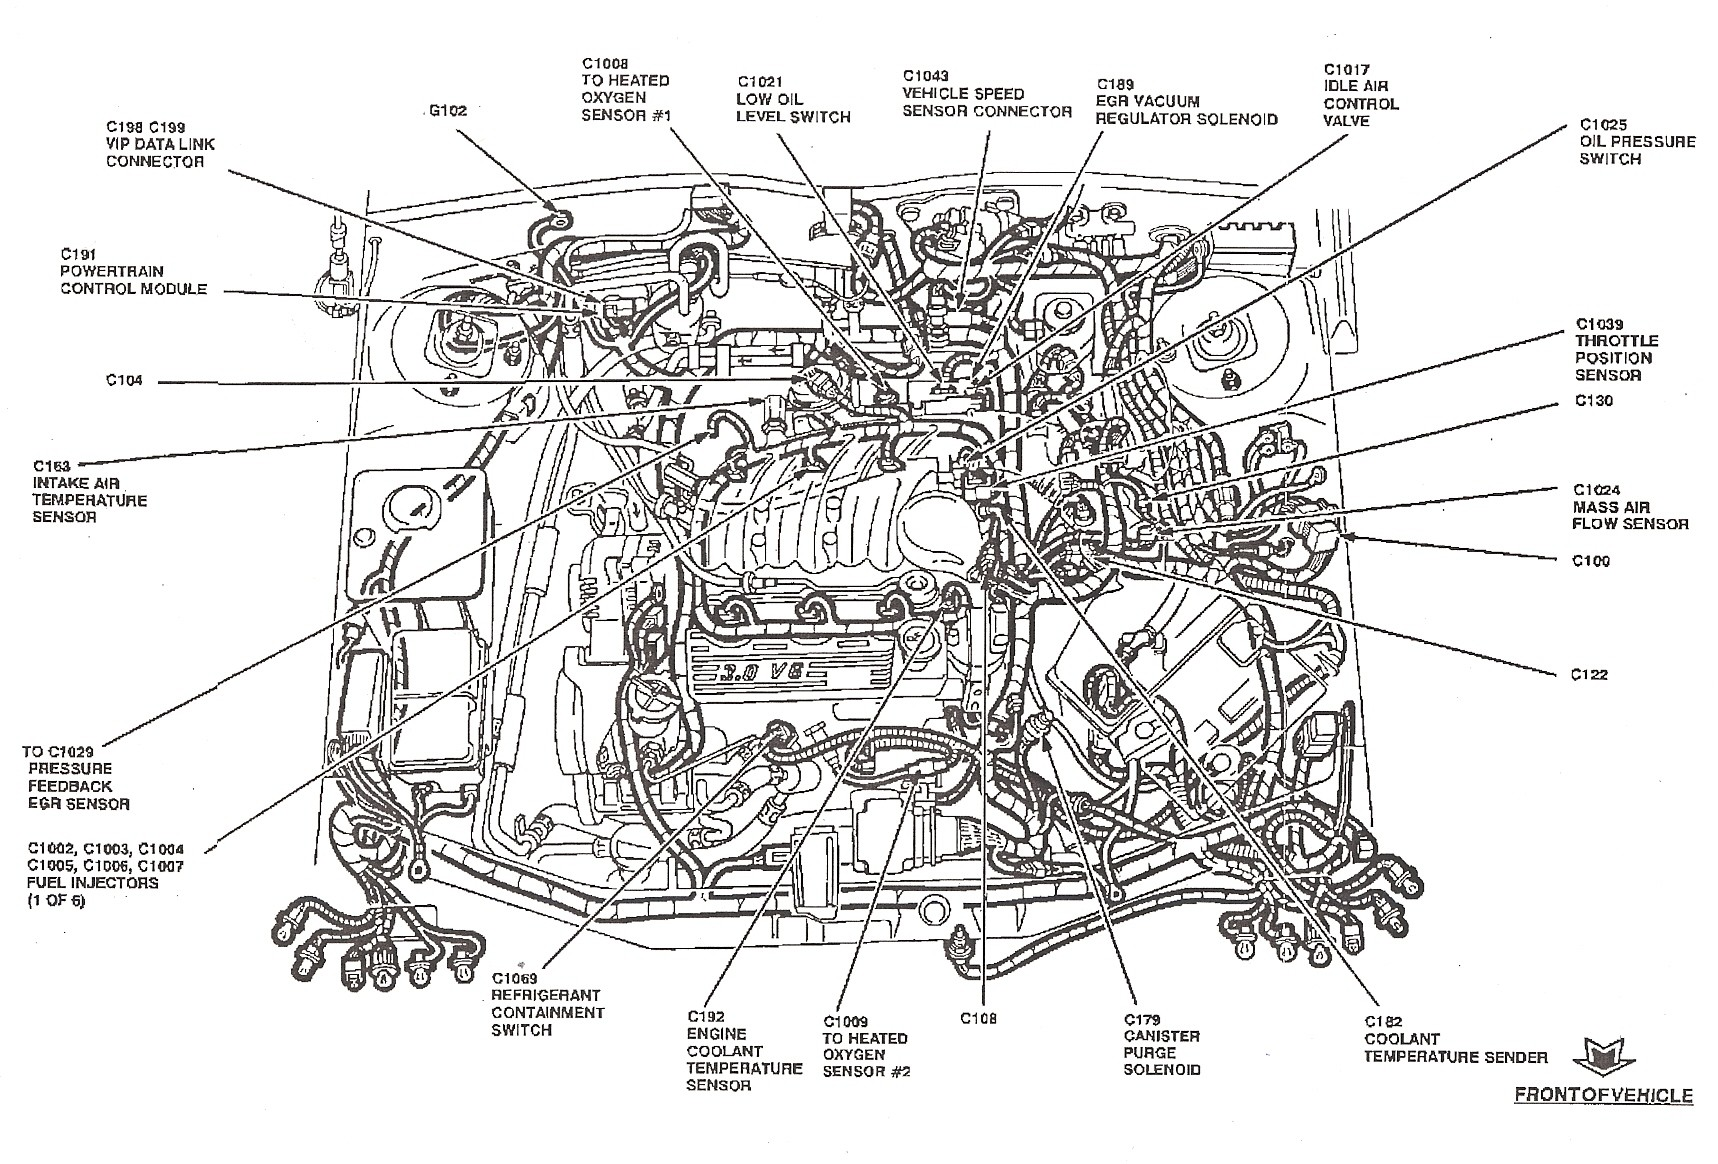 hight resolution of ford focus undercarriage diagram on 2000 ford explorer engine diagram moreover 2002 ford focus engine diagram in addition ford focus